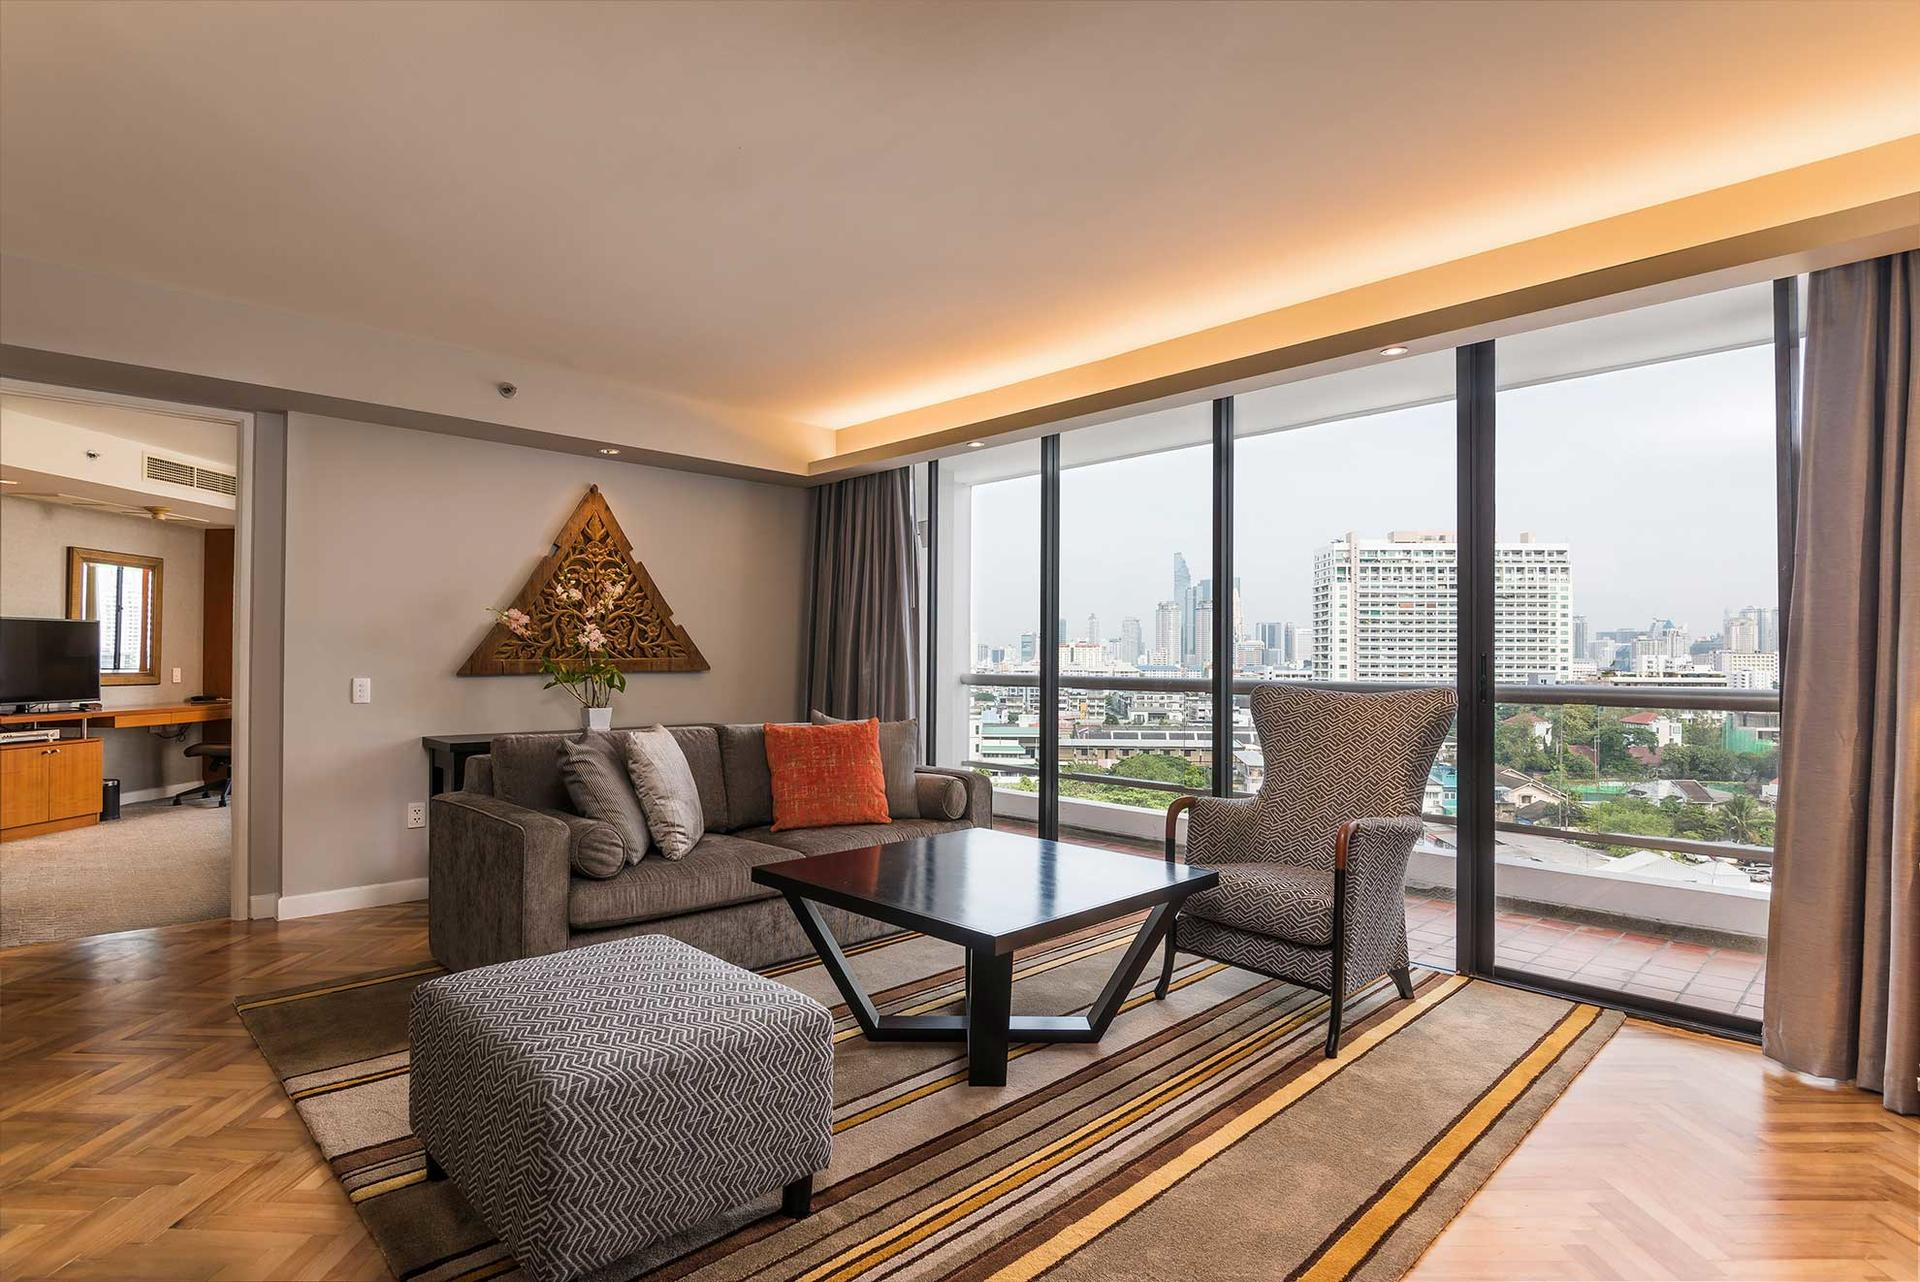 Chatrium Residence Sathon Bangkok Deluxe Three-Bedroom Suite